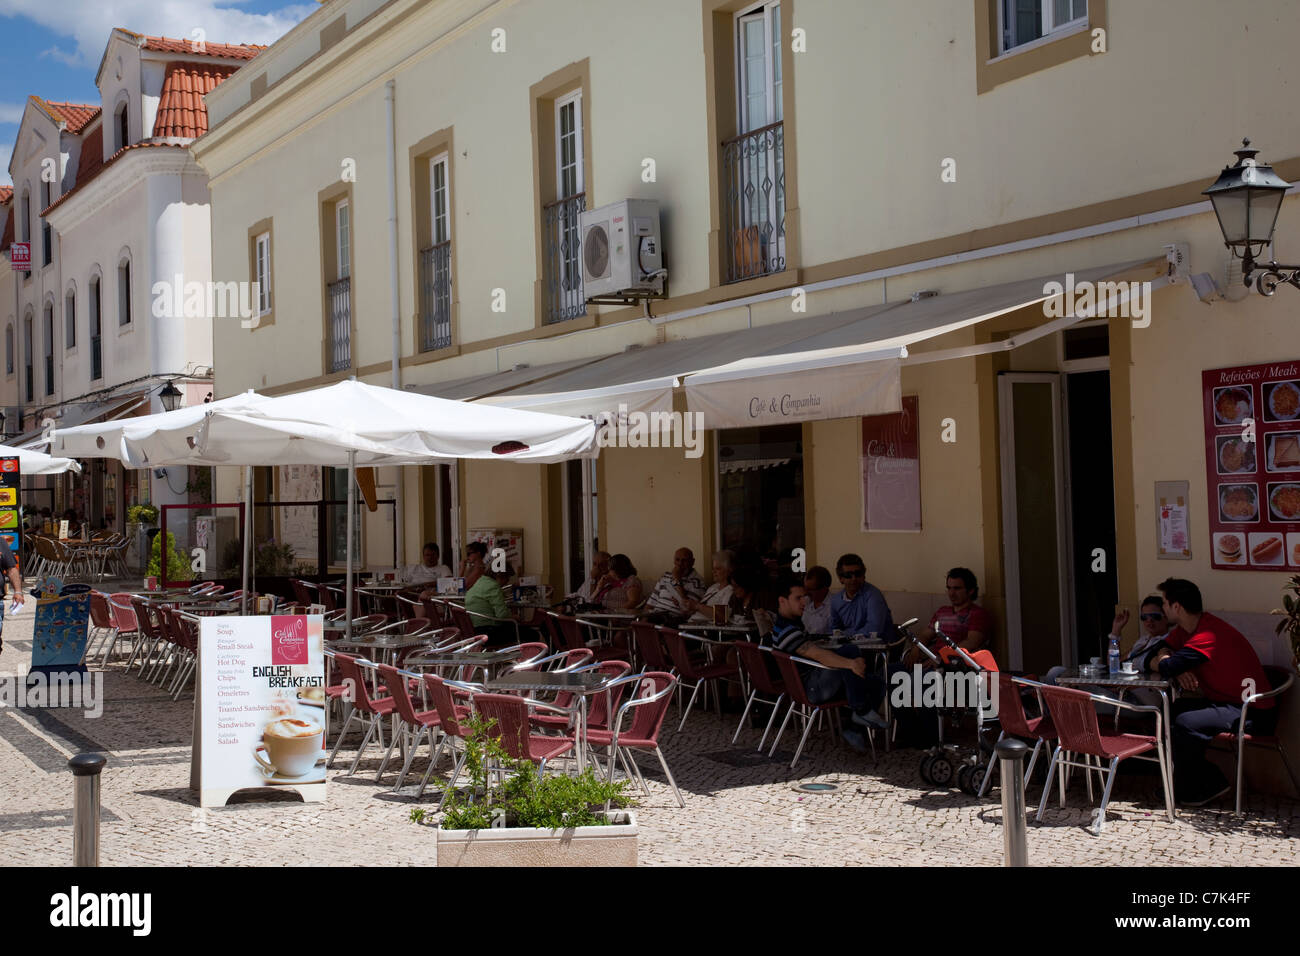 Portugal, Algarve, Silves, Cafes - Stock Image